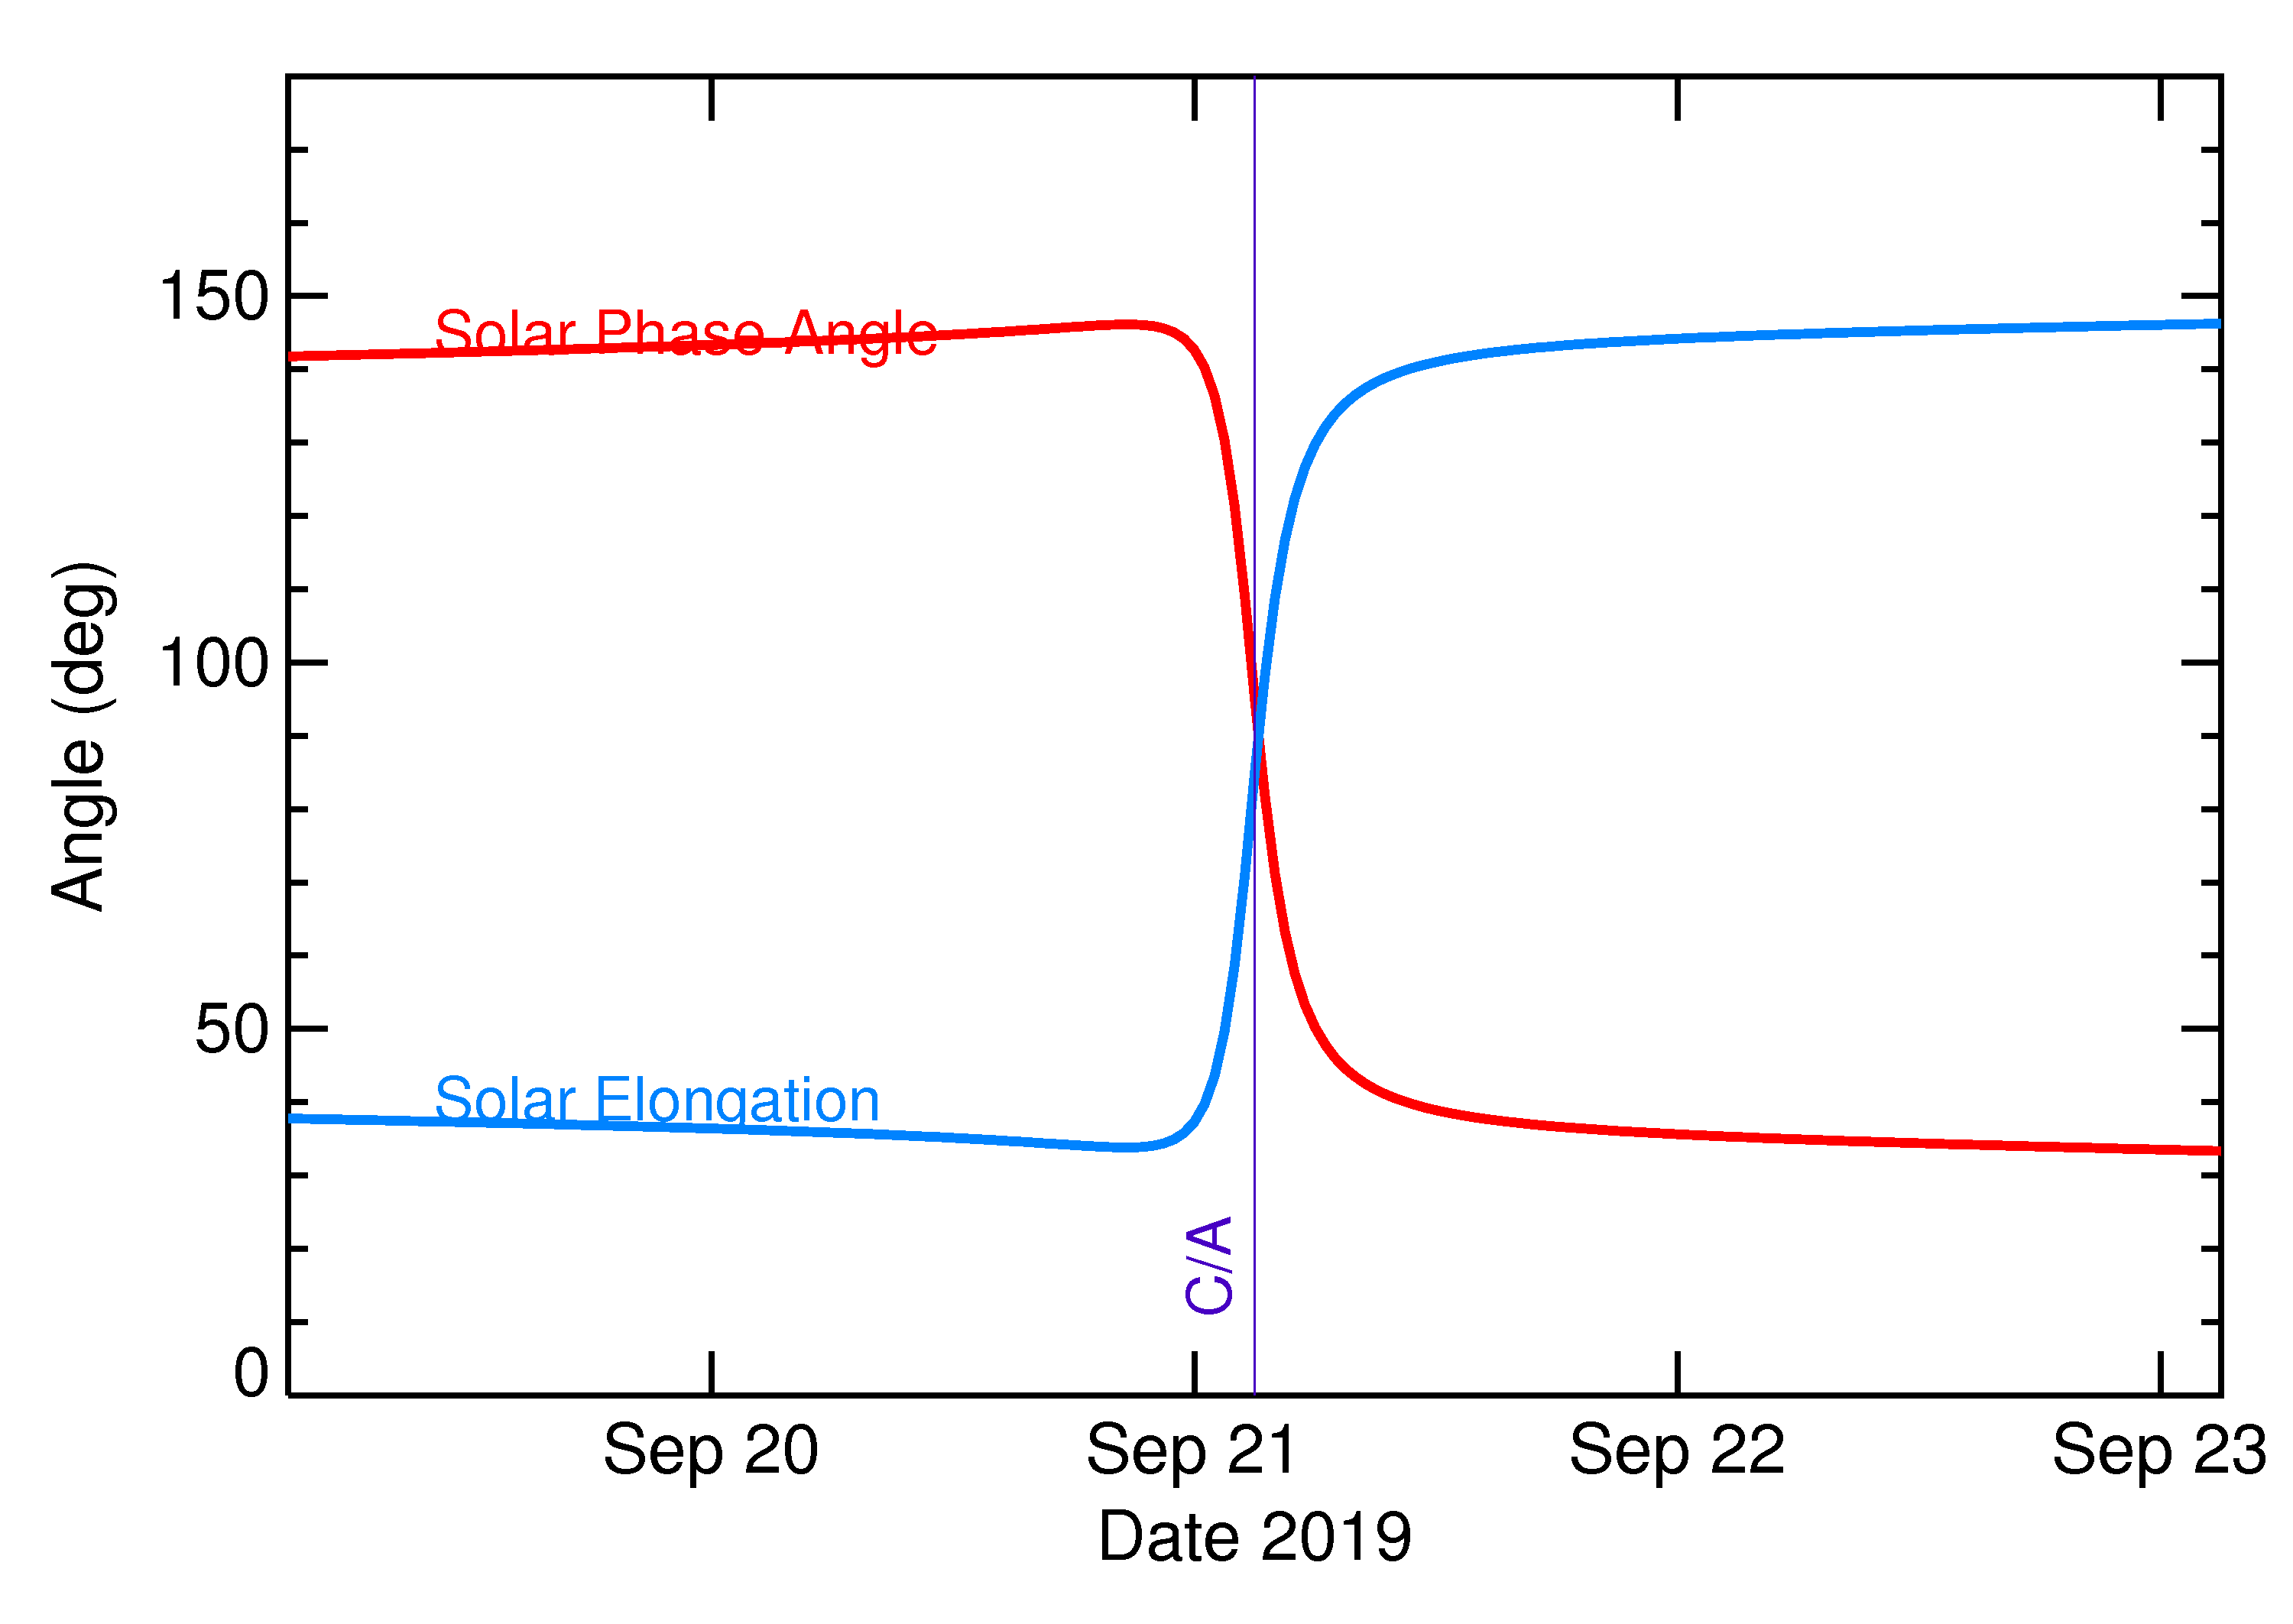 Solar Elongation and Solar Phase Angle of 2019 SU2 in the days around closest approach